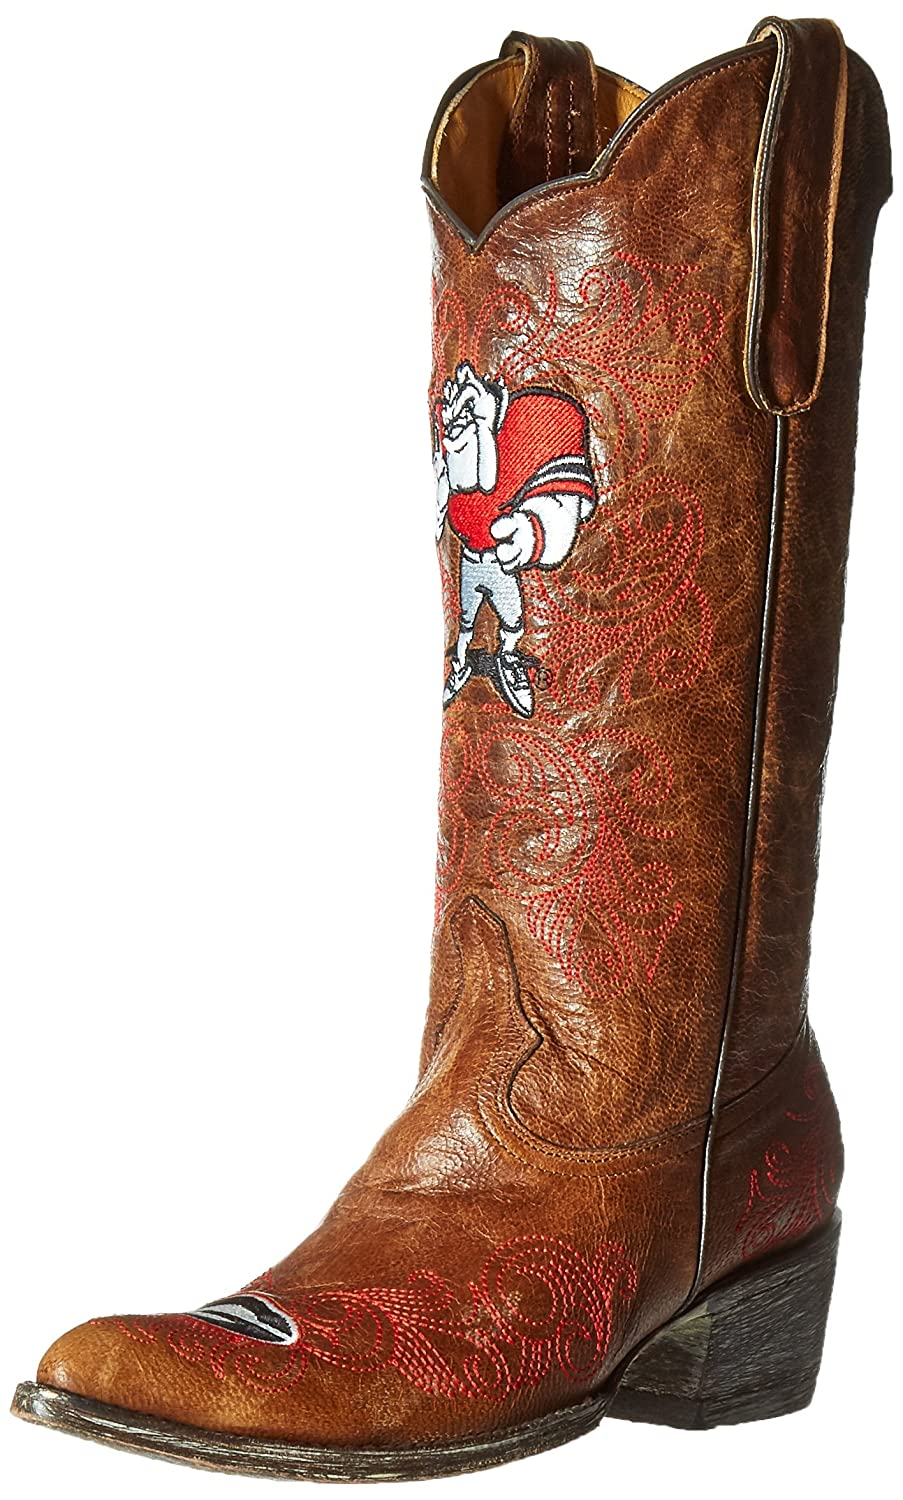 Gameday Boots NCAA Georgia Bulldogs Women's 13-Inch B00A8O4LEO 5.5 B (M) US|Brass